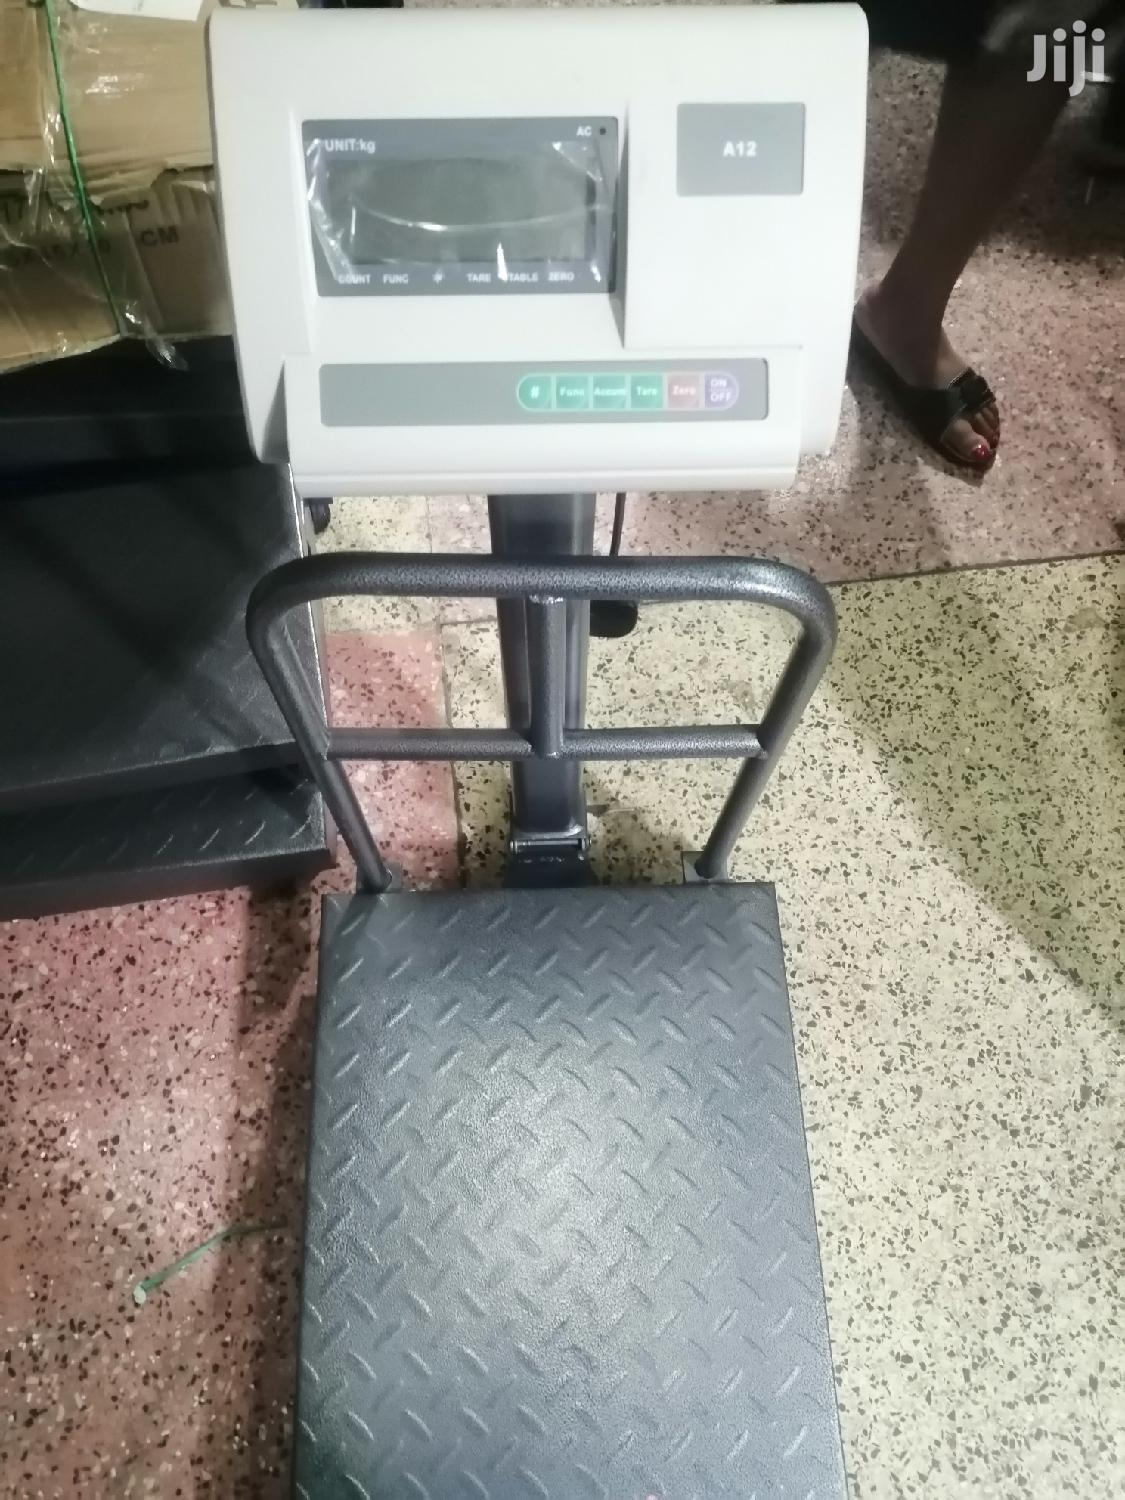 300kgs A12 Weighing Digital Scale | Store Equipment for sale in Nairobi Central, Nairobi, Kenya